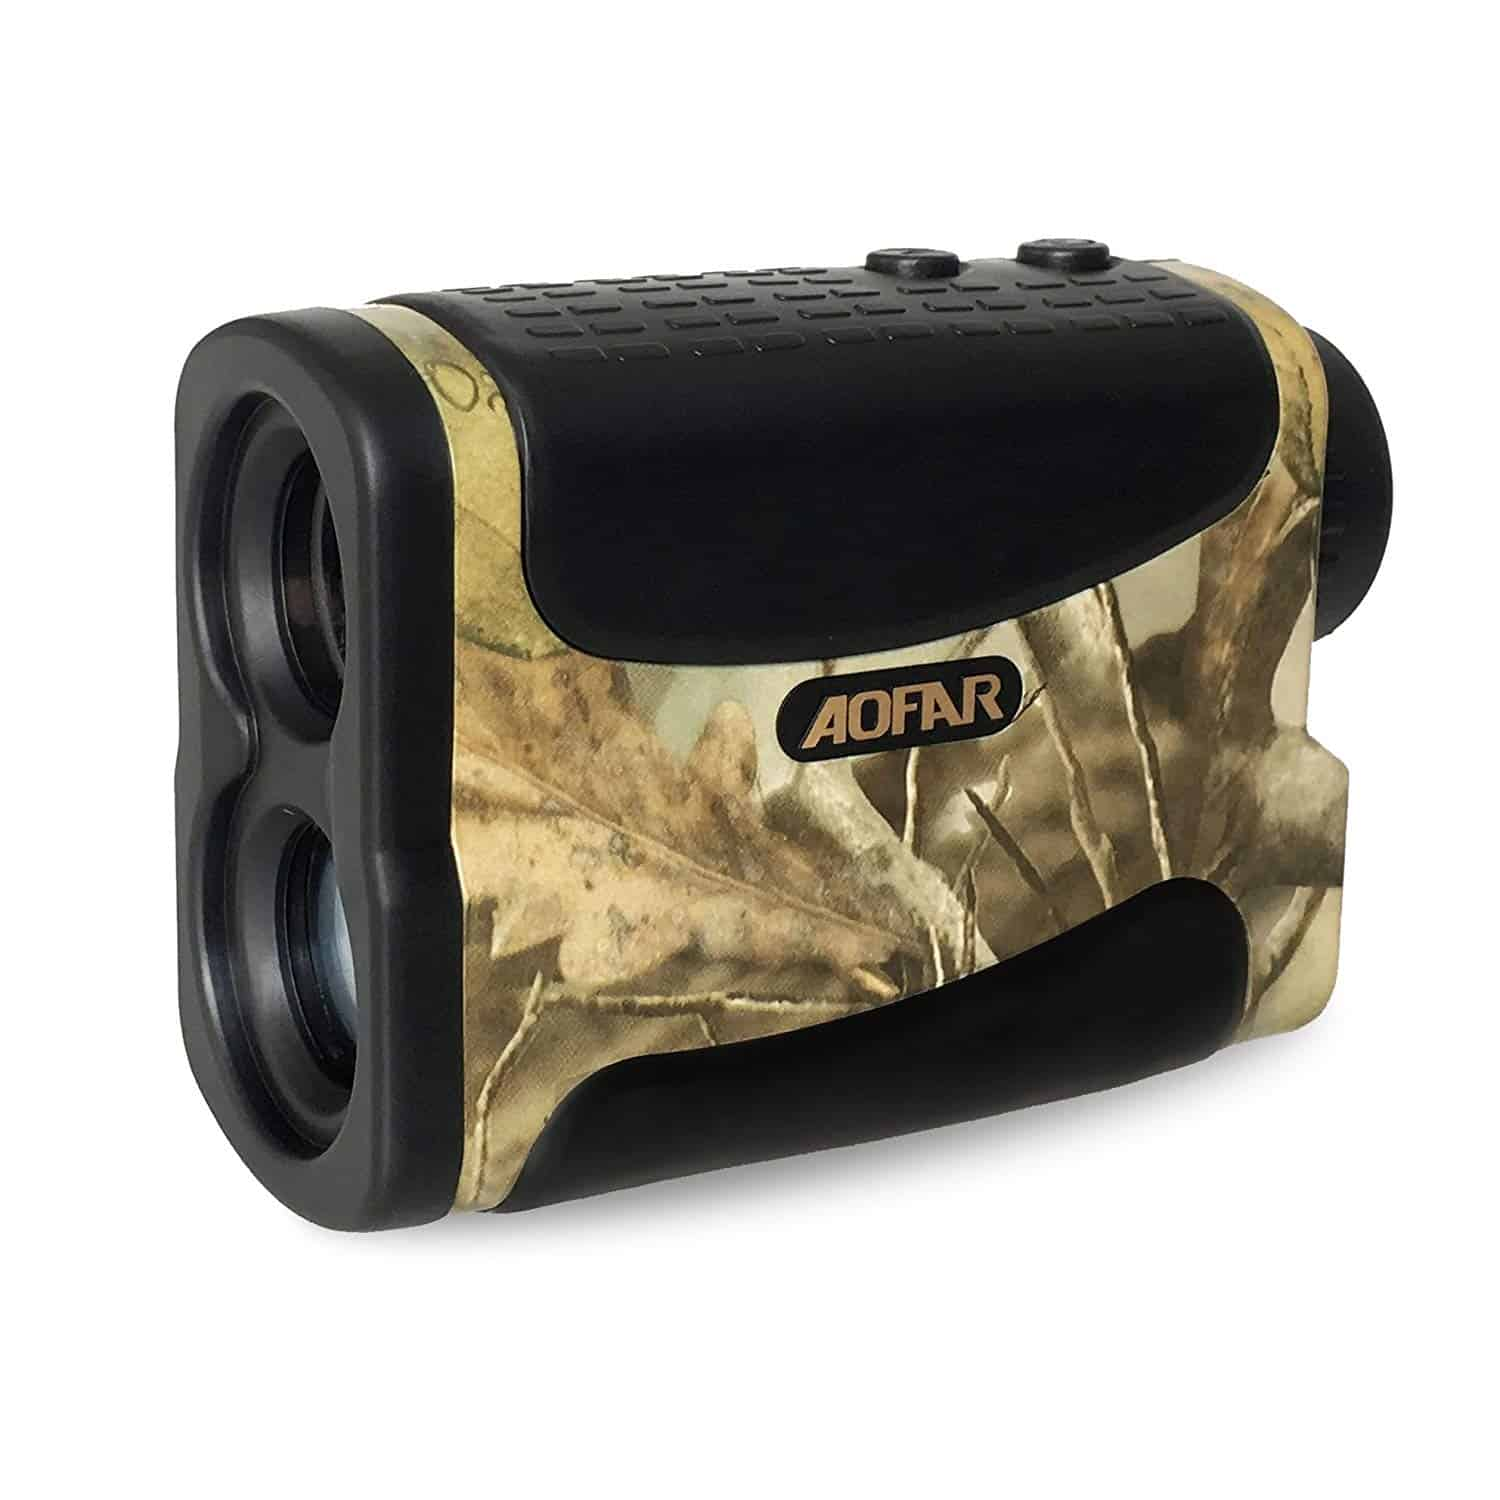 aofar rangefinder review